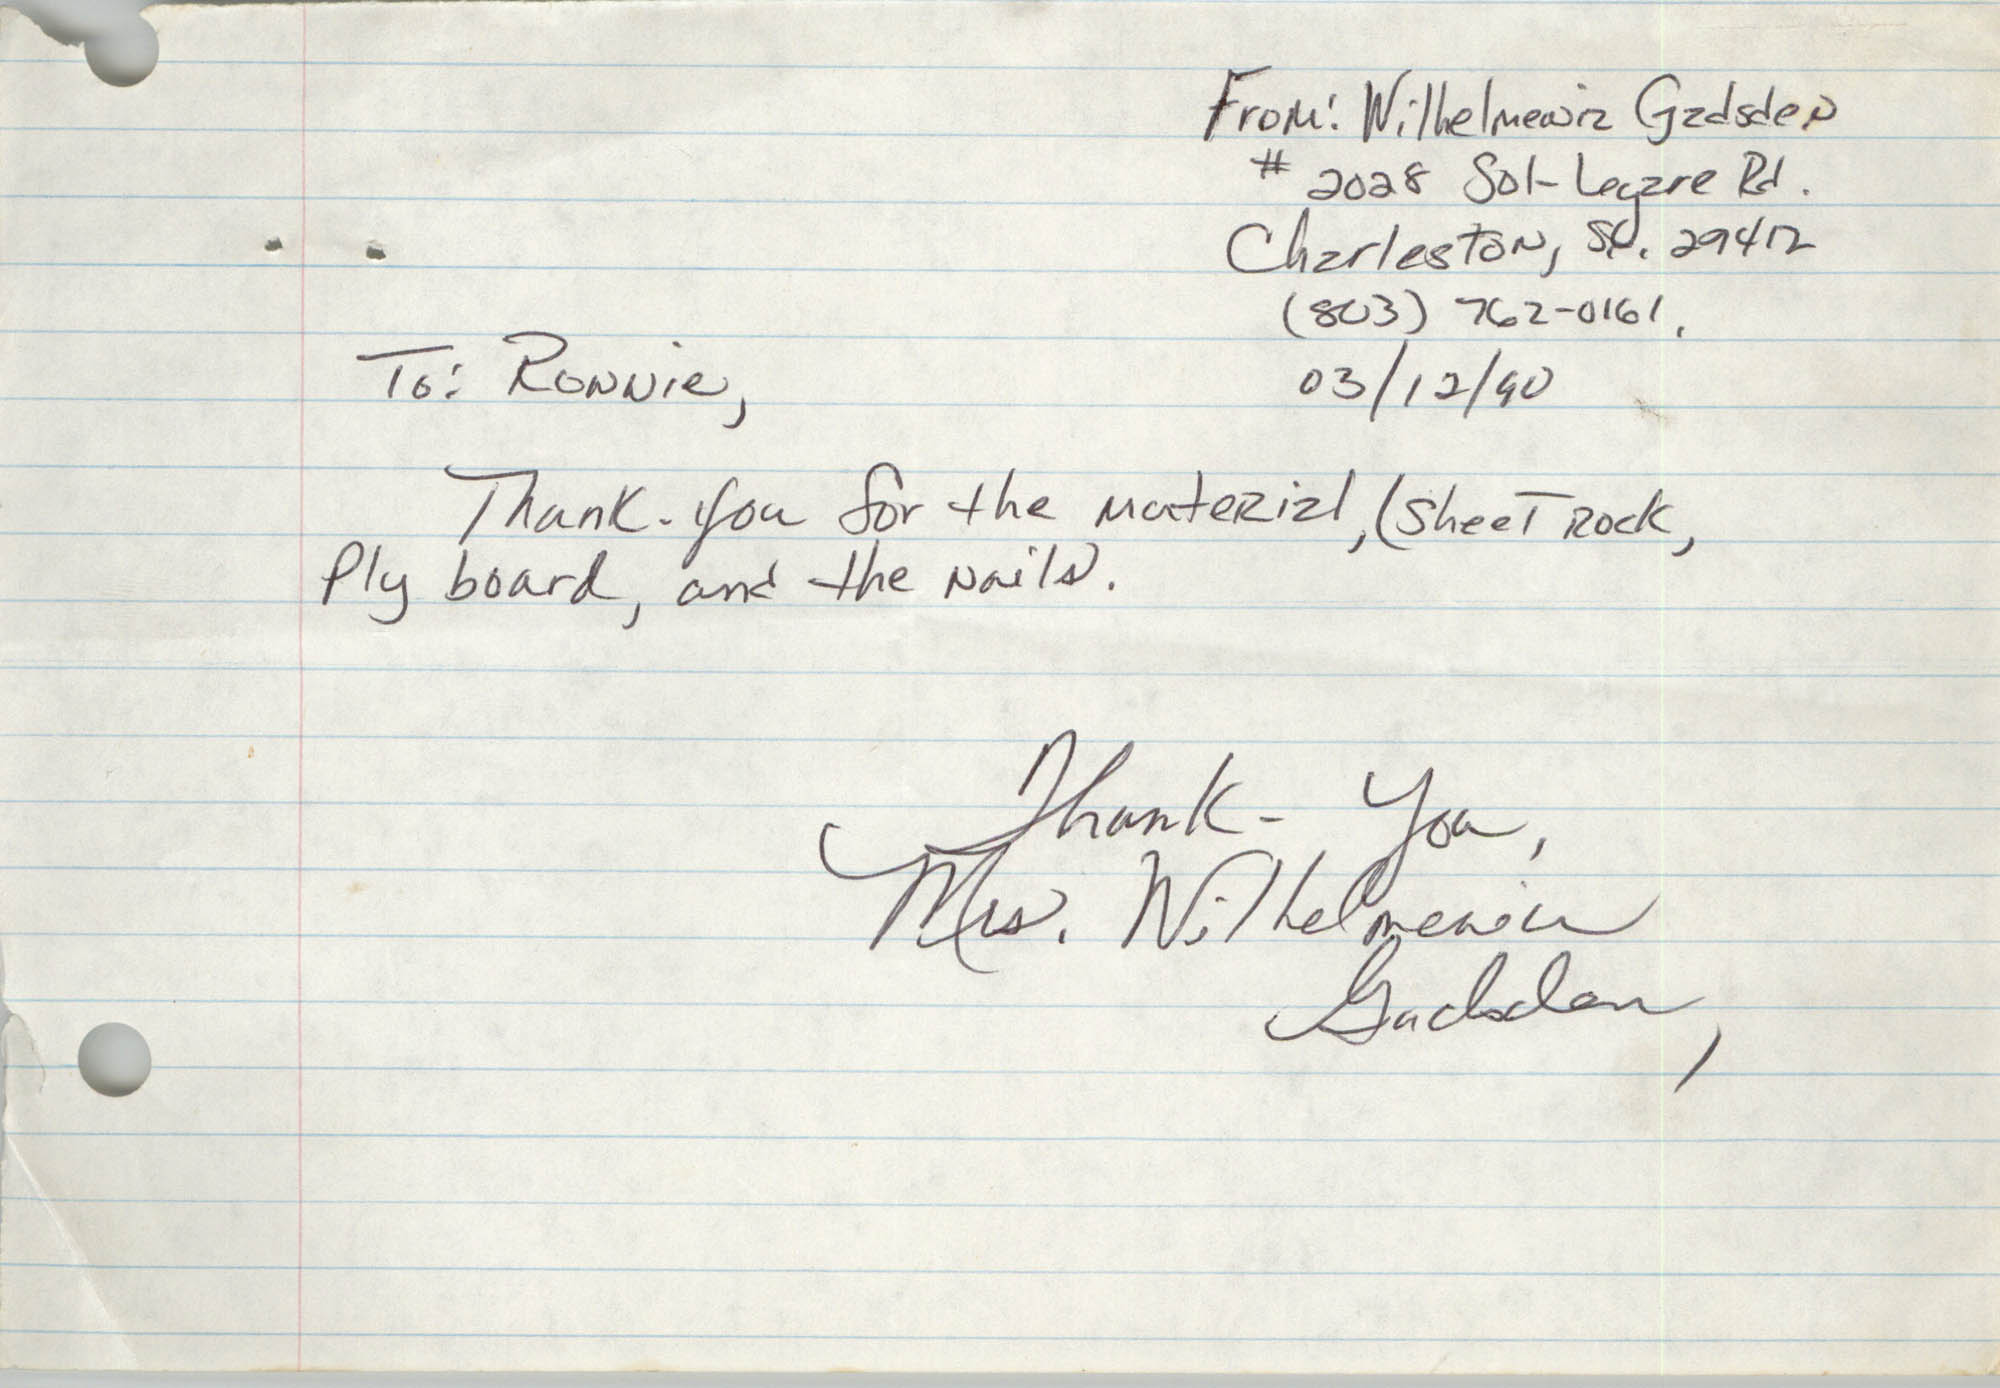 Letter from Wilhelmenia Gadsden, March 12, 1990